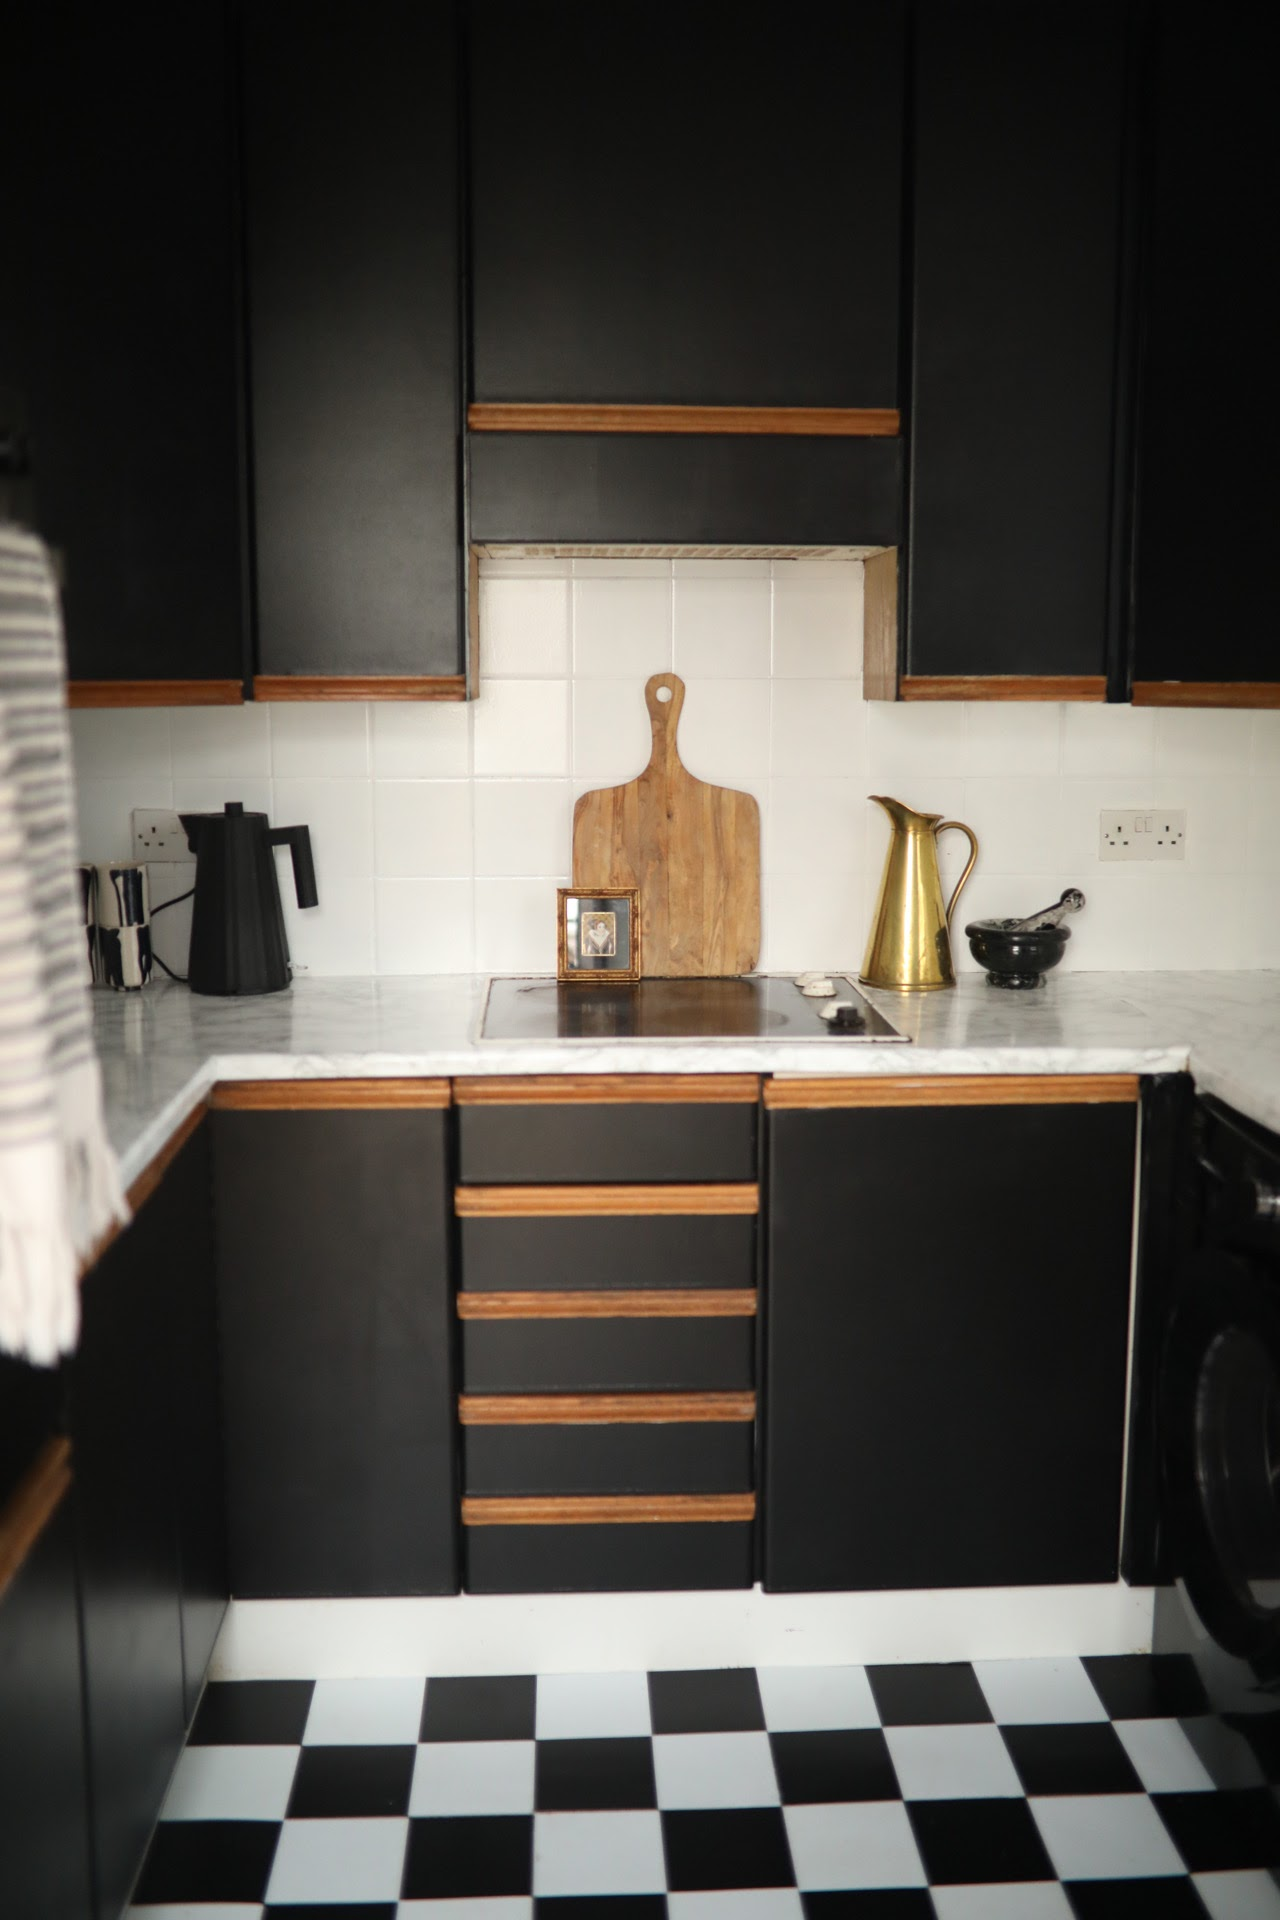 OUR KITCHEN REVAMP ON A BUDGET